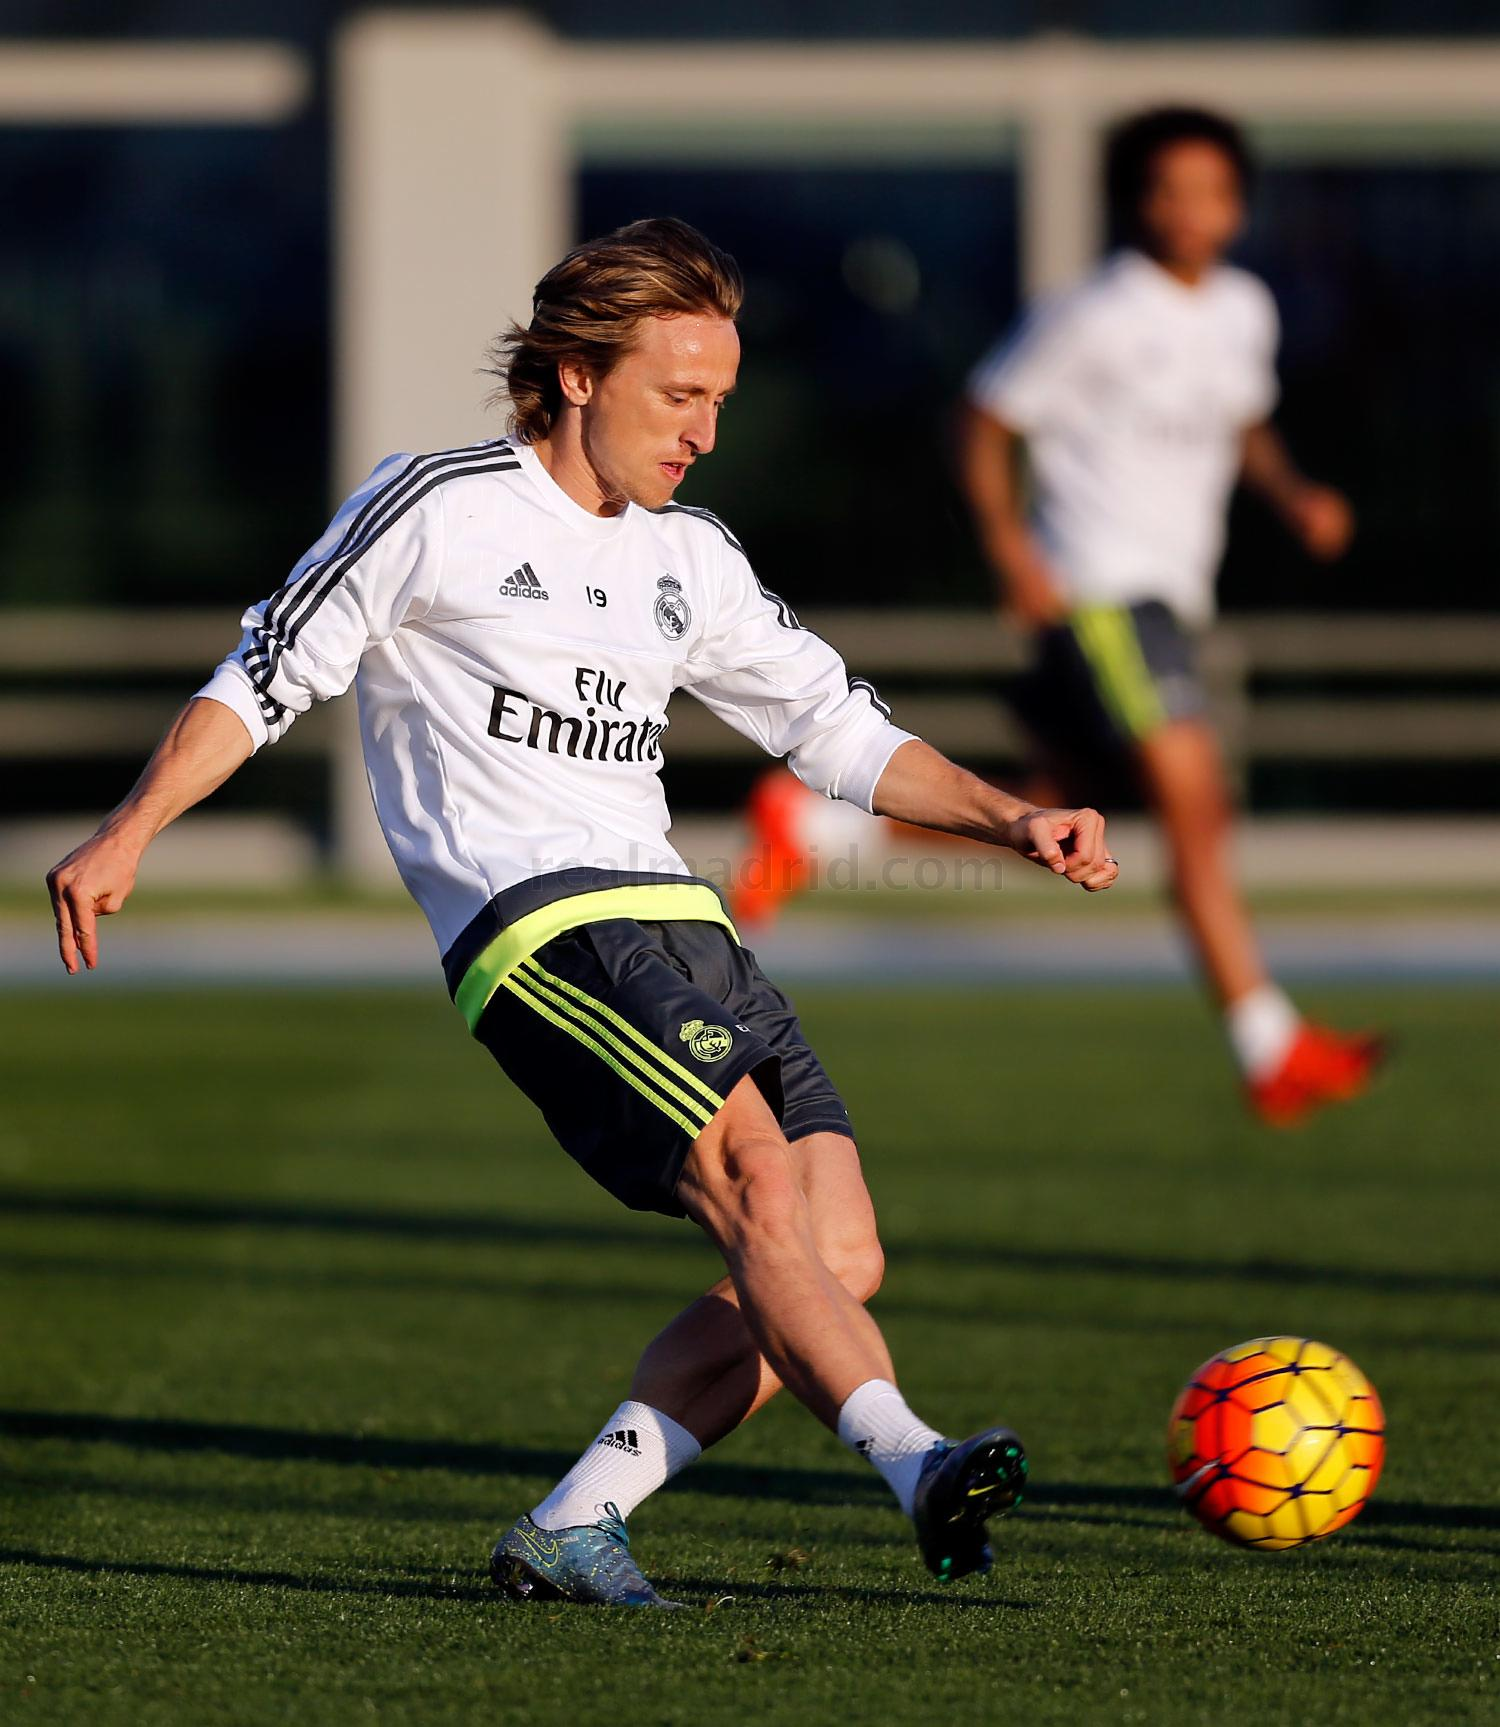 Real Madrid - Entrenamiento del Real Madrid - 17-11-2015